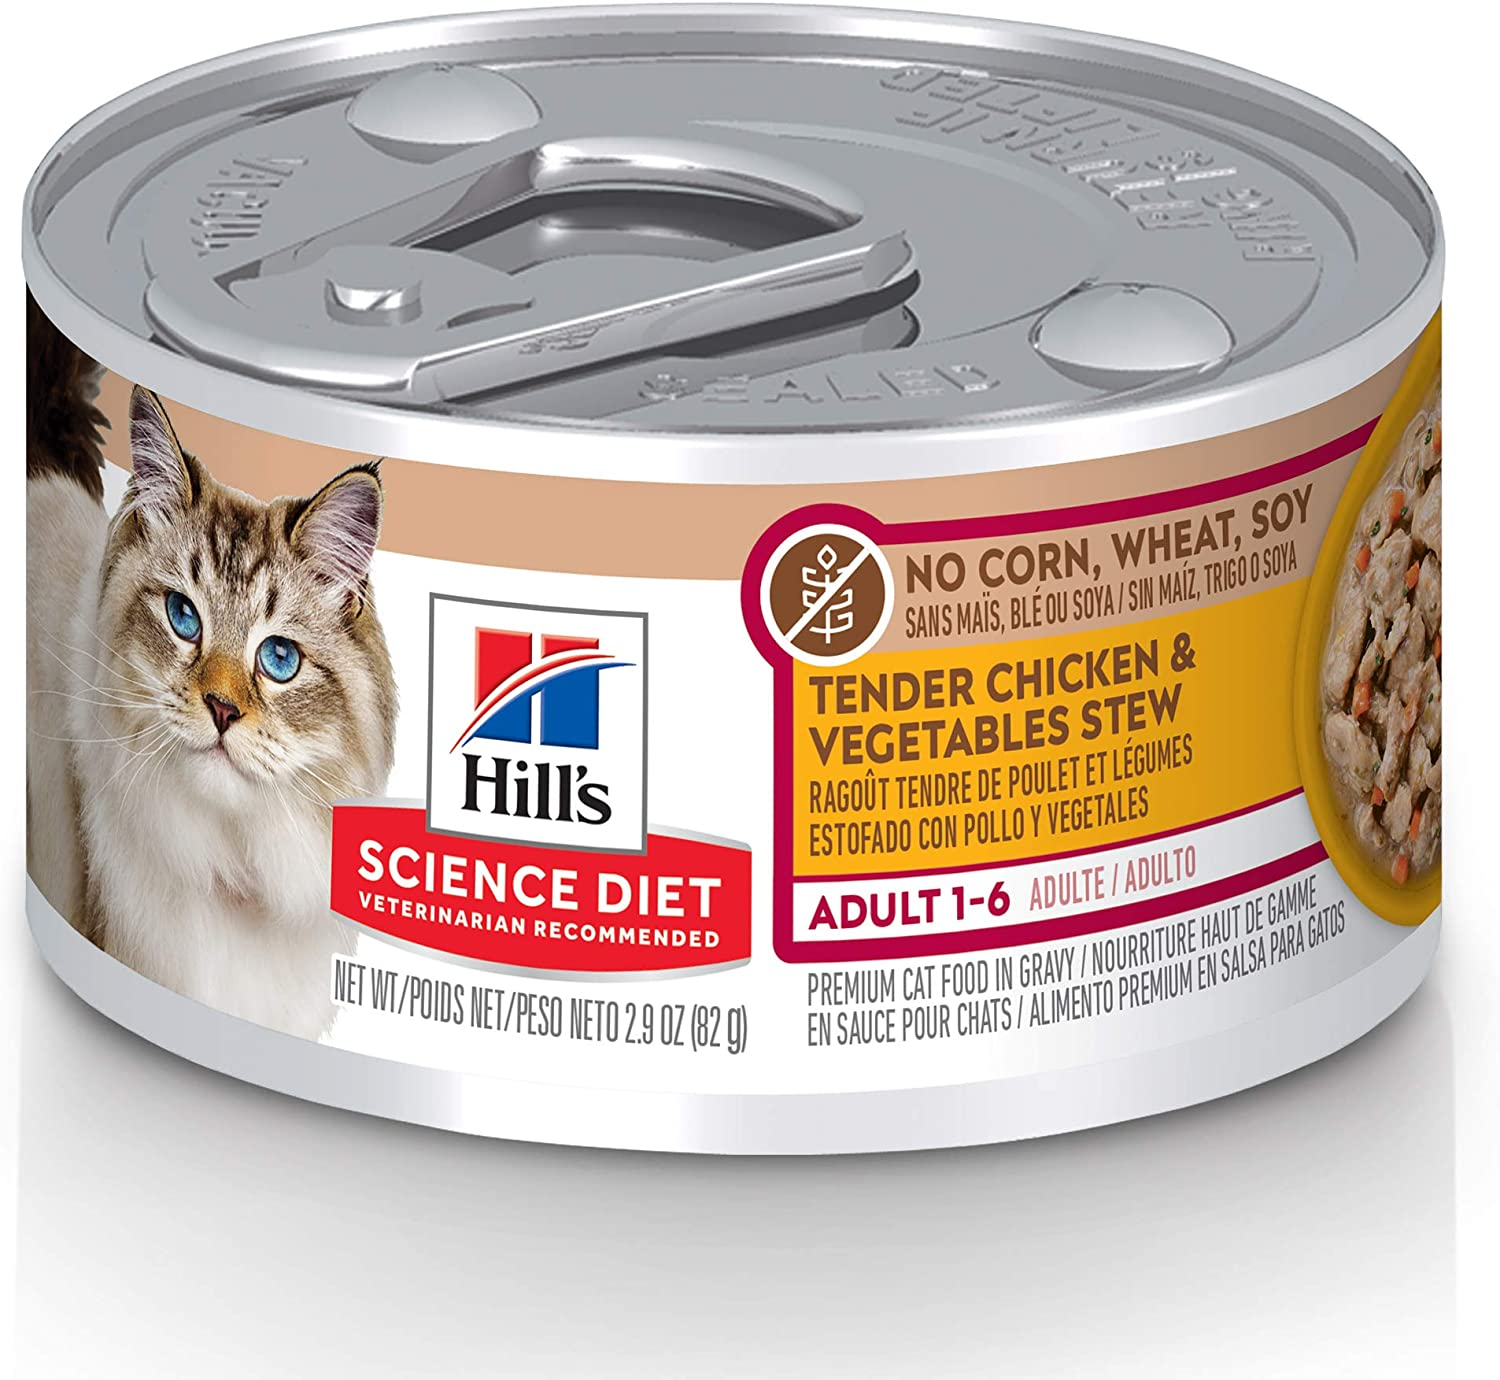 Hill's Science Diet Canned Wet Cat Food, Adult, No Corn, Wheat or Soy Recipes, 2.9 oz Can, Pack of 24